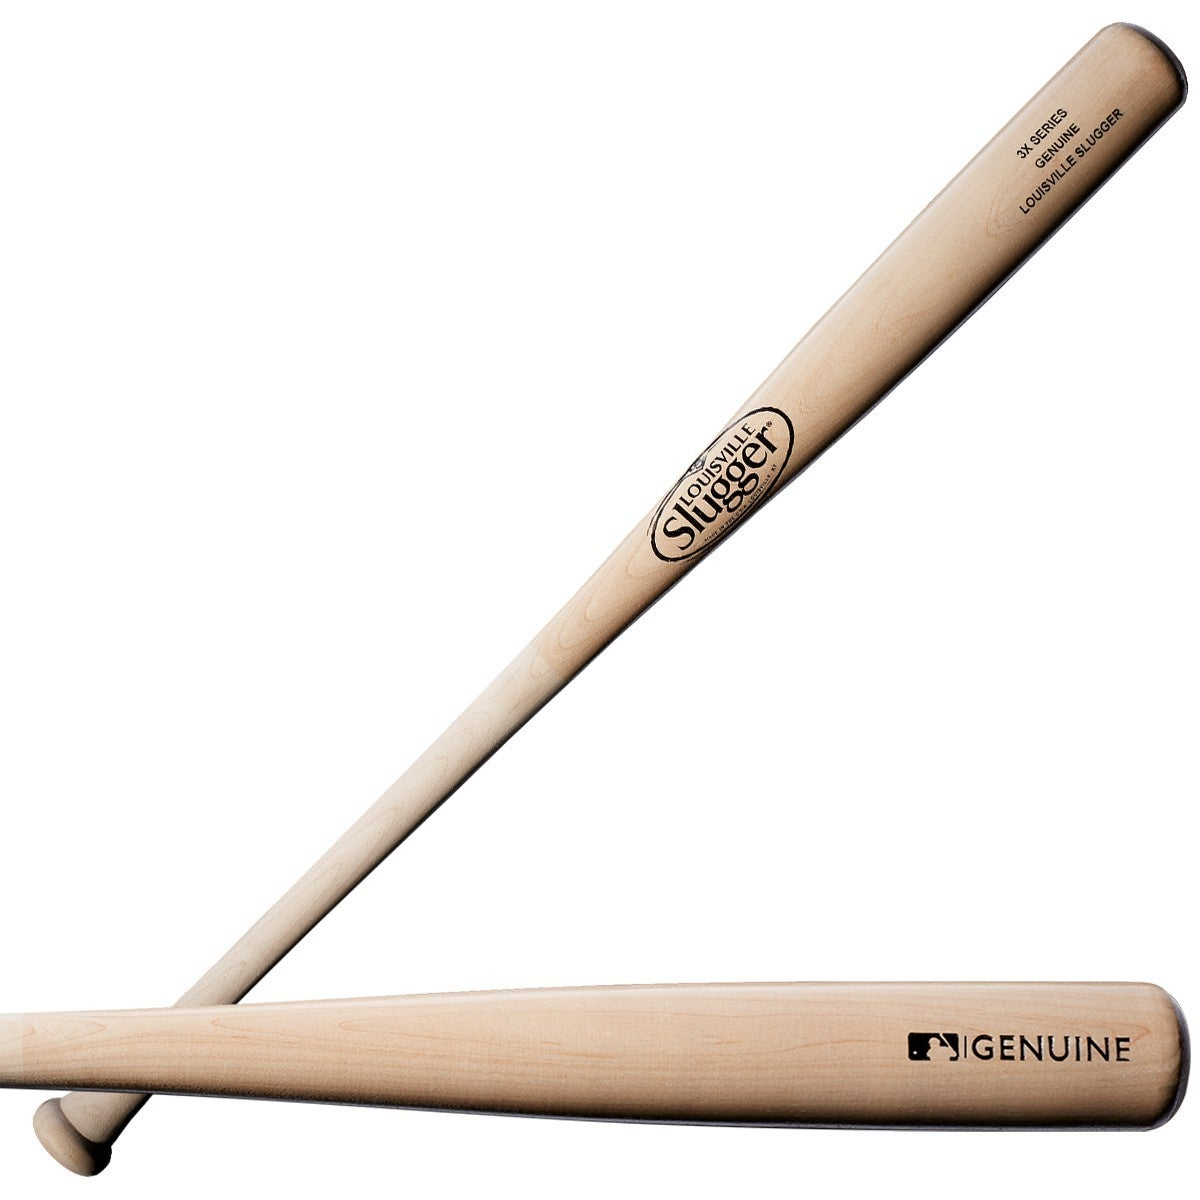 Series 3 Genuine Ash Natural Baseball Bat 1